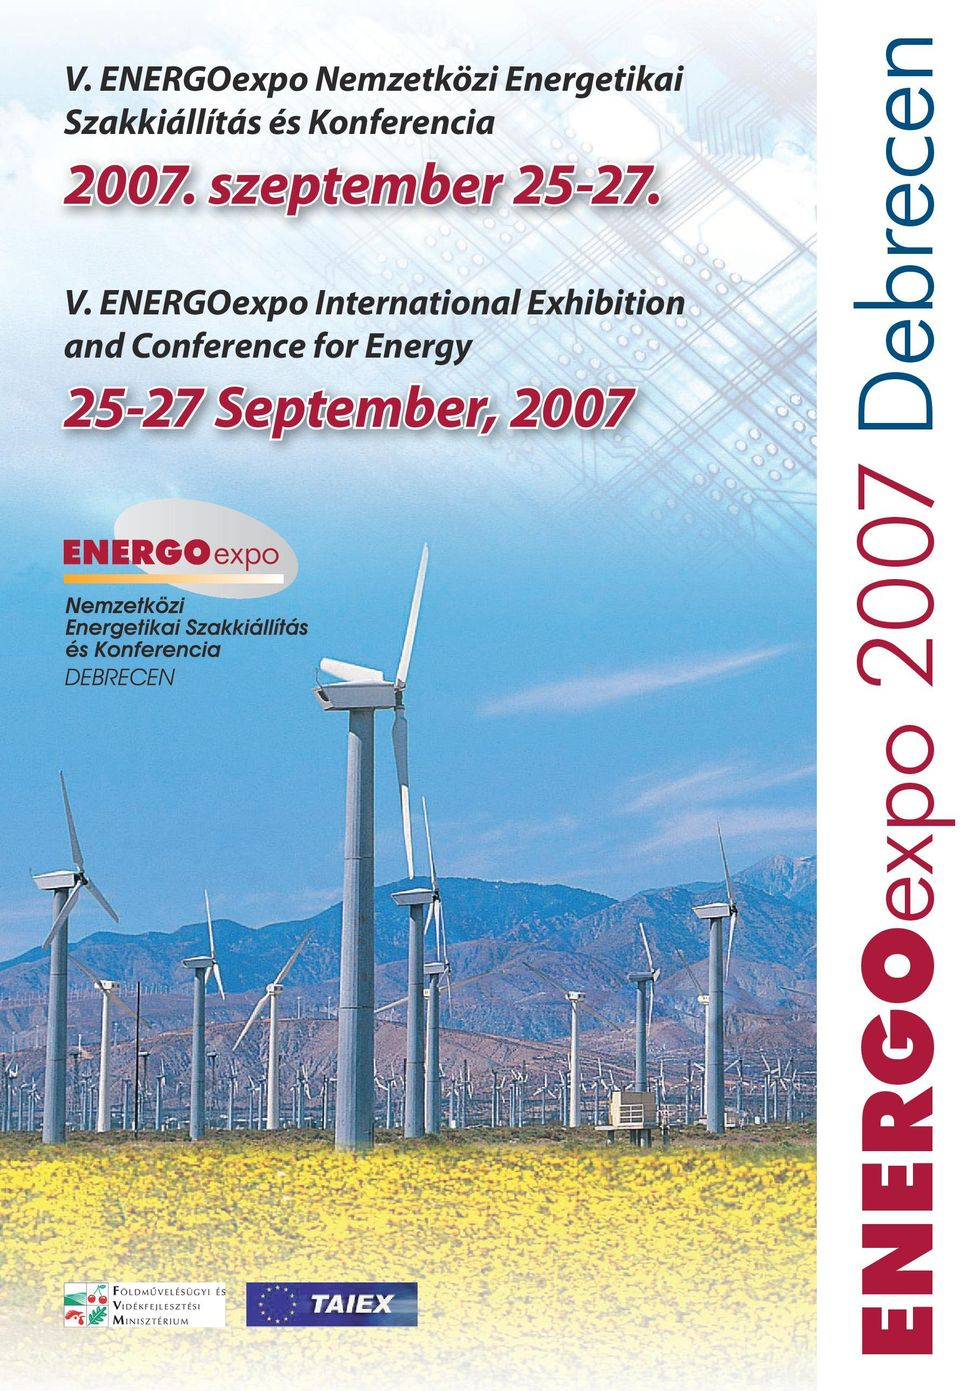 ENERGOexpo International Exhibition and Conference